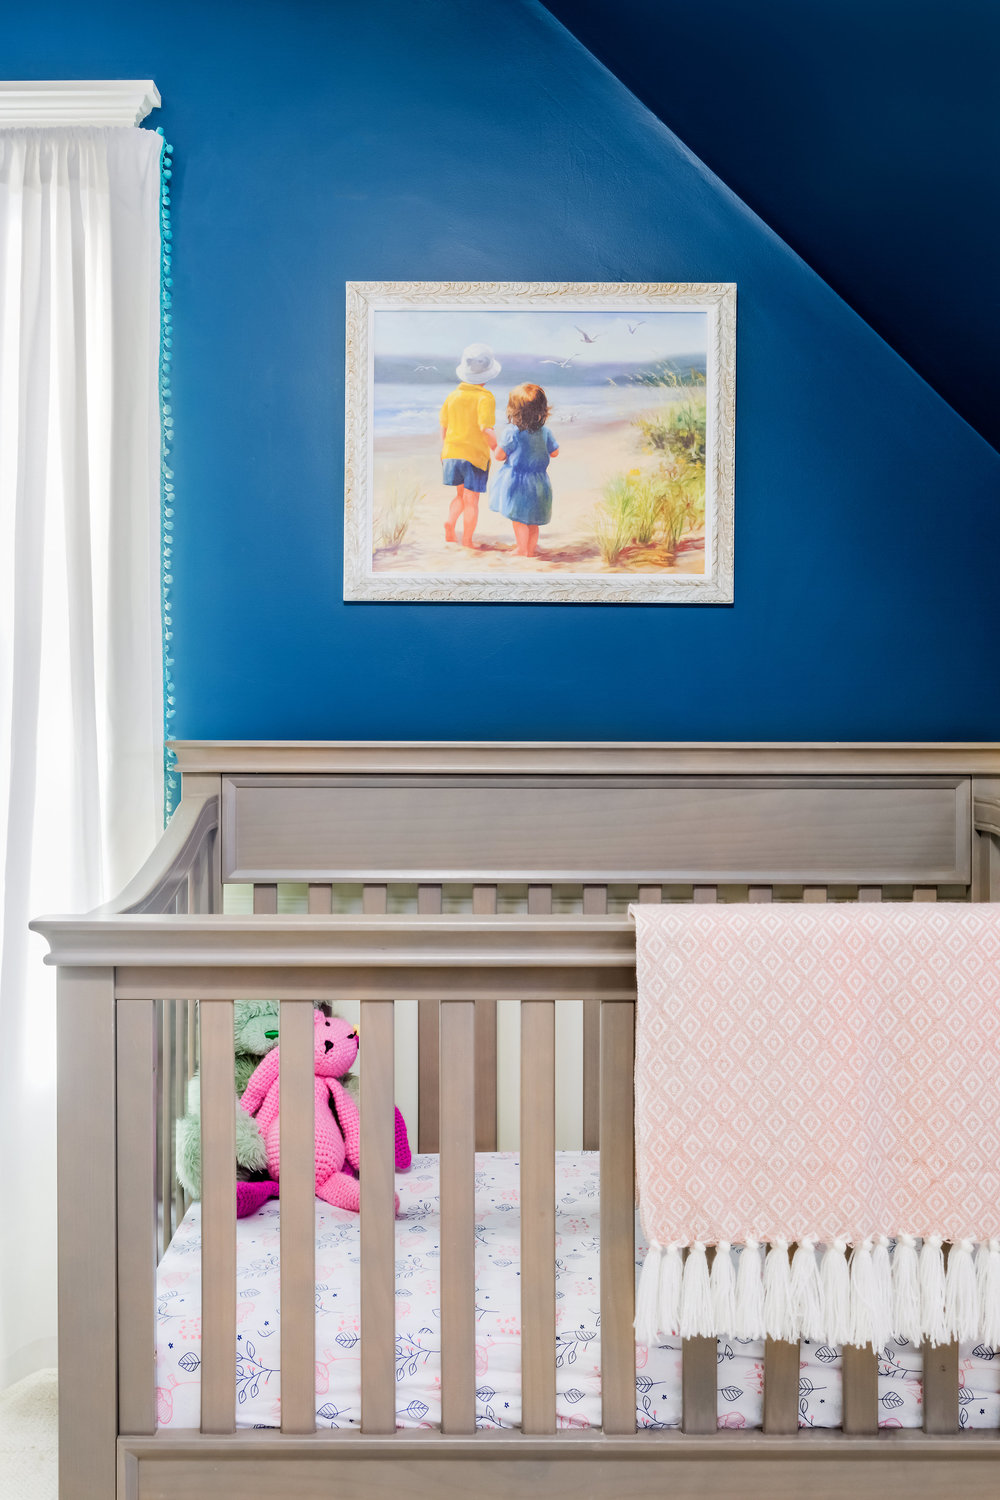 Boo & Rook bridgewater boston interior design traditional modern girl nursery design crib.jpg